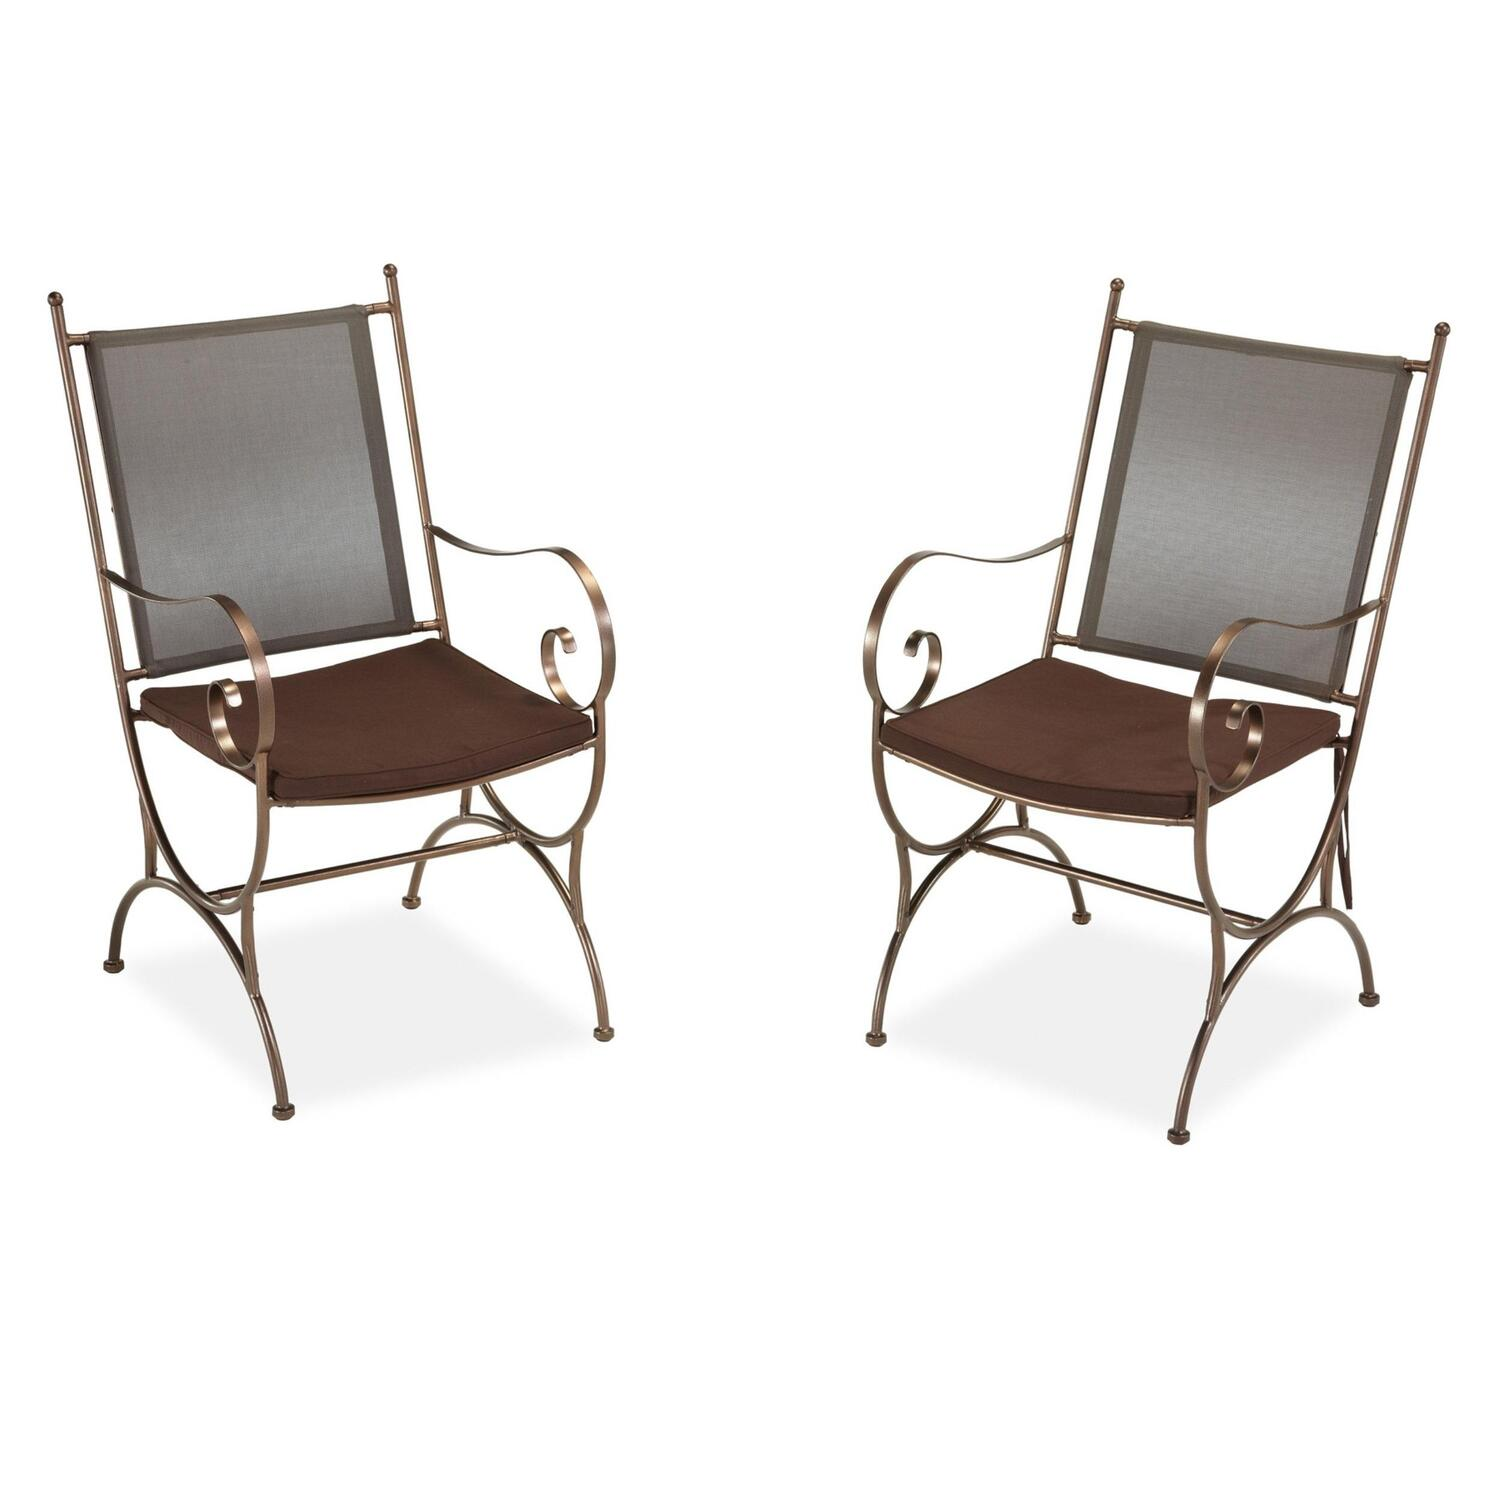 Home Styles Sundance Dining Chair Pair w/ Cushion by OJ Commerce 5608 ...